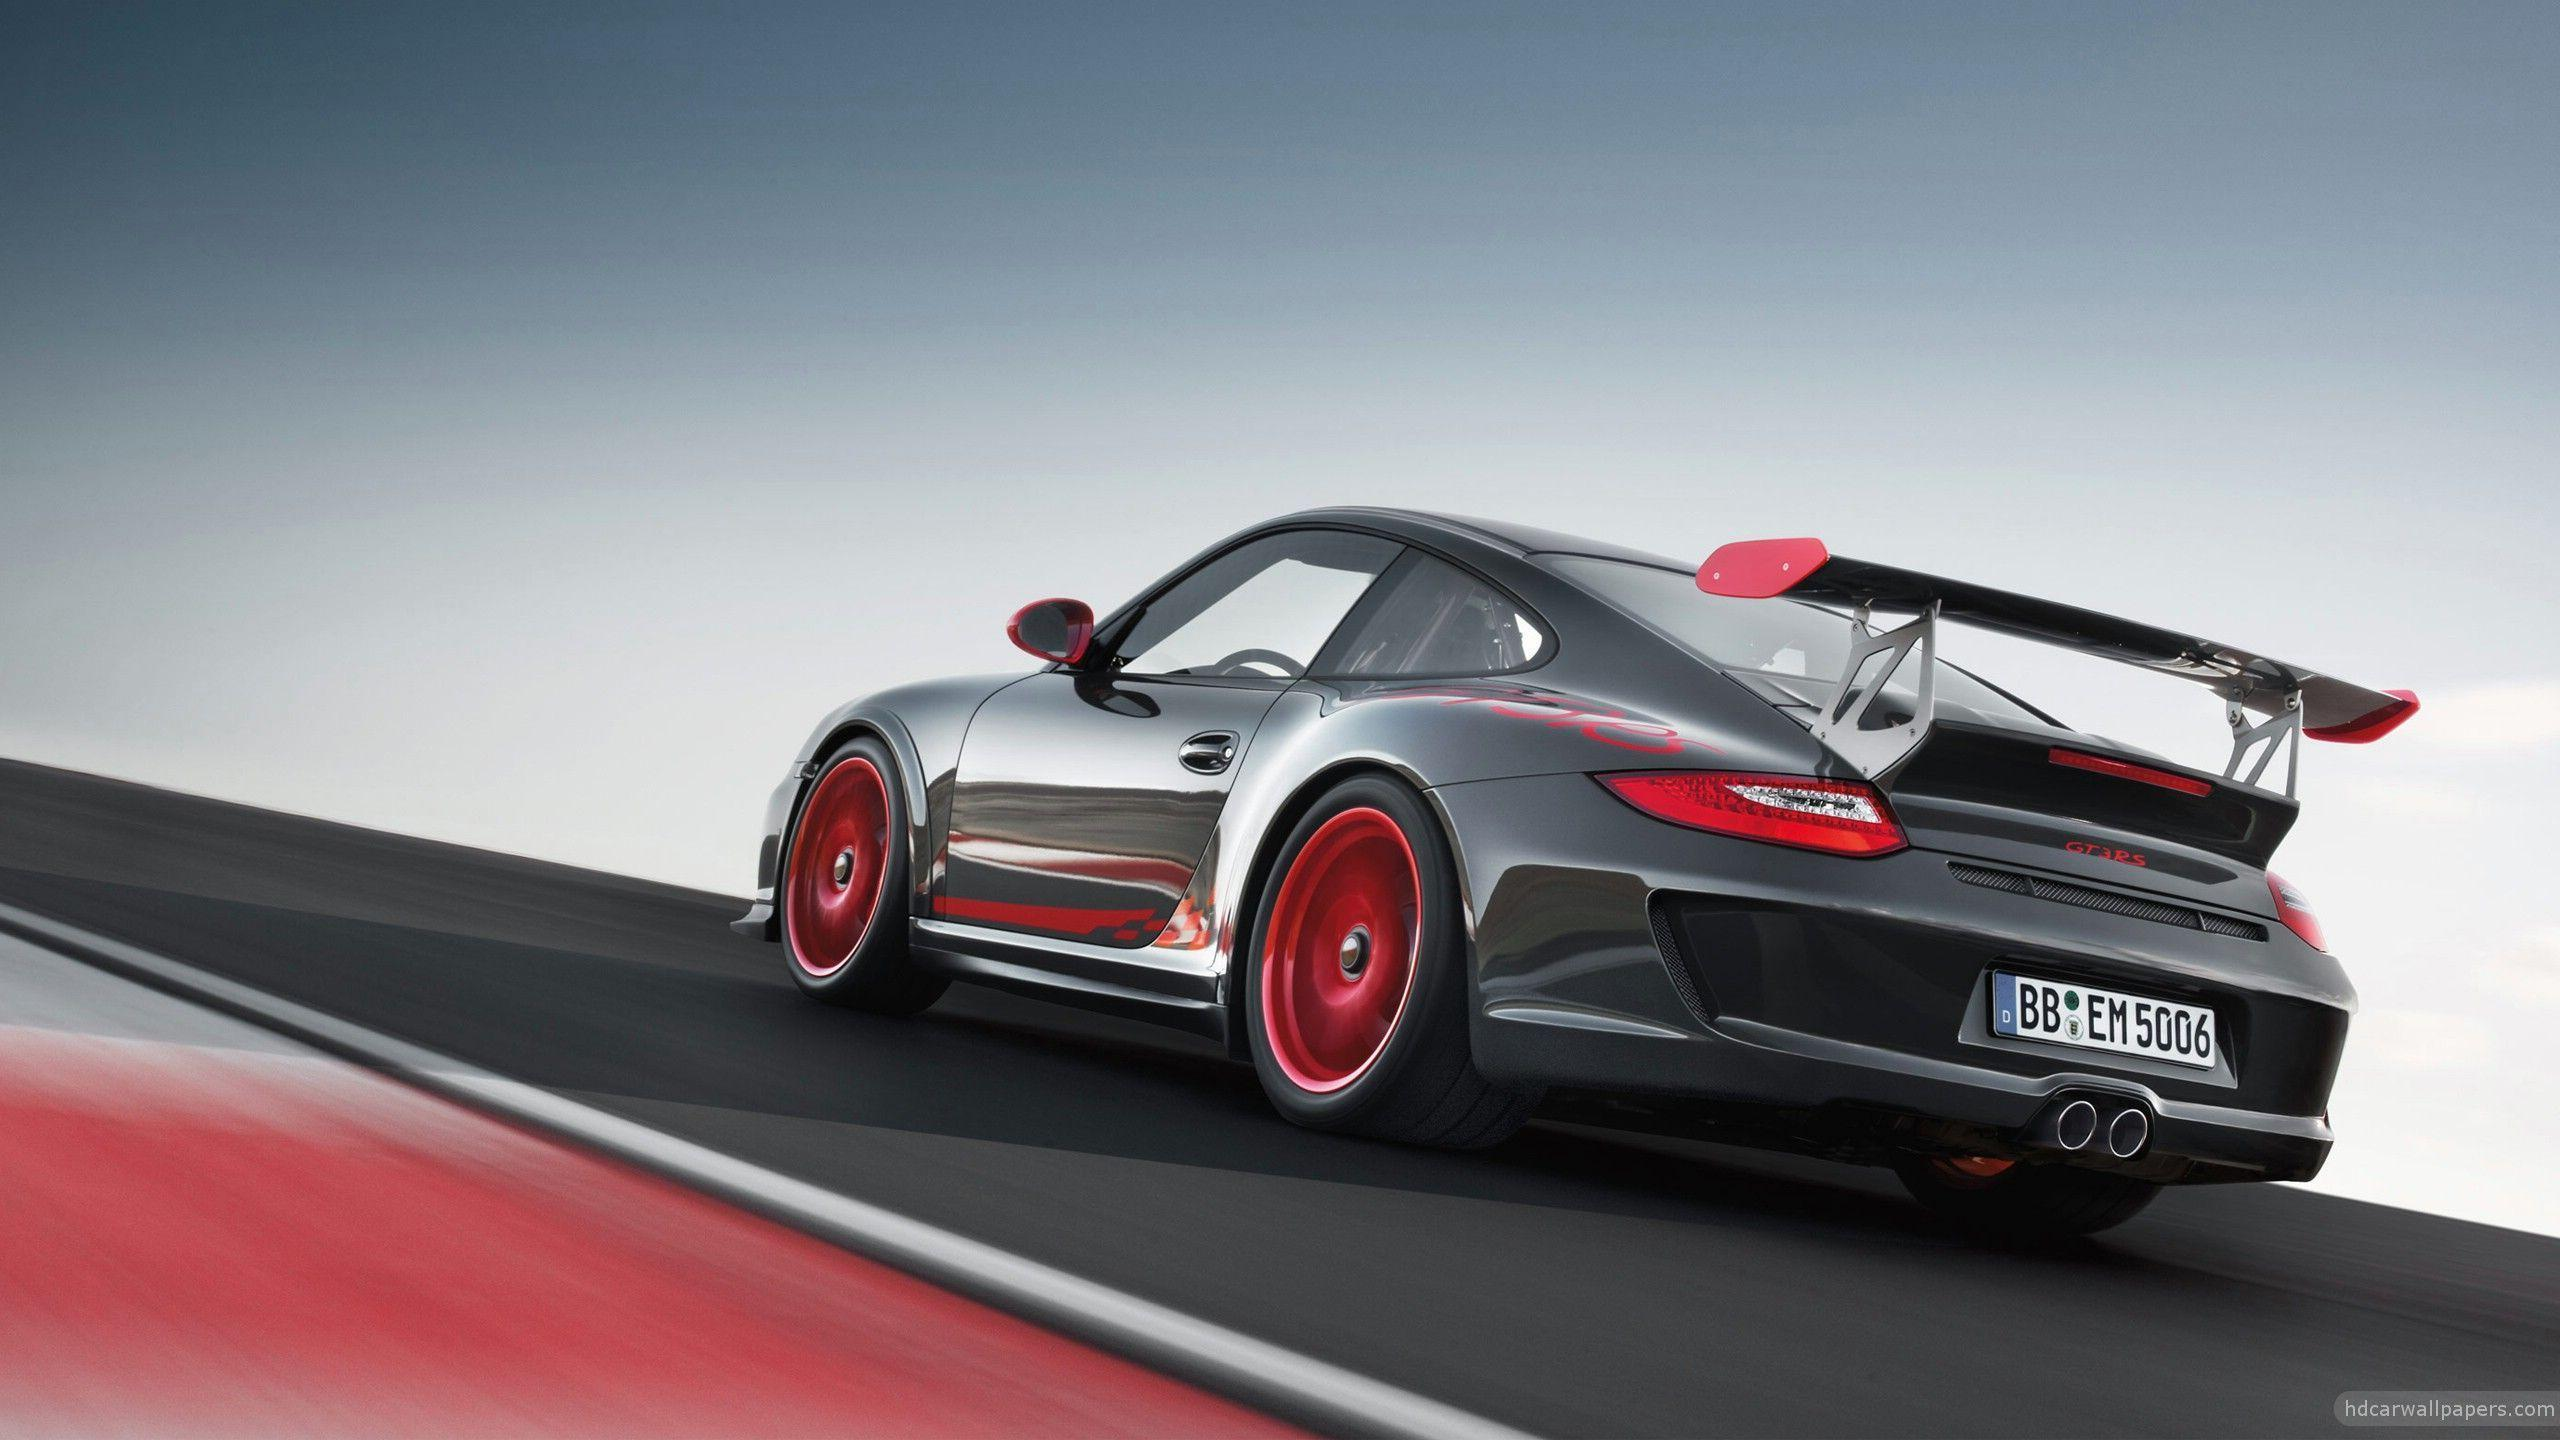 Porsche 911 GT3 RS Wallpapers 2560x1440